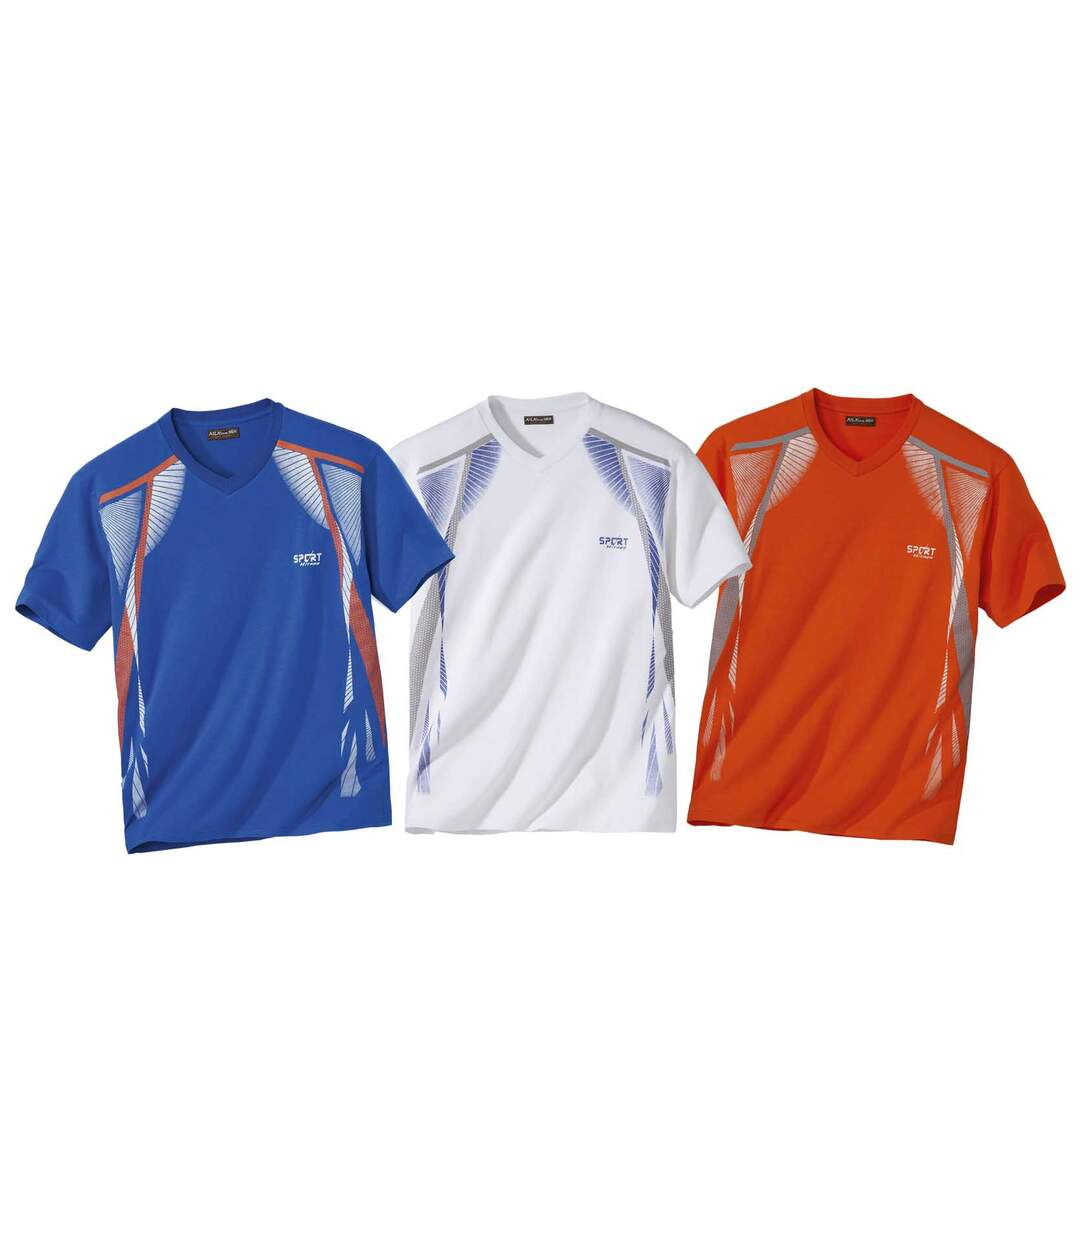 Pack of 3 Men's Sports T-Shirts - Blue White Orange